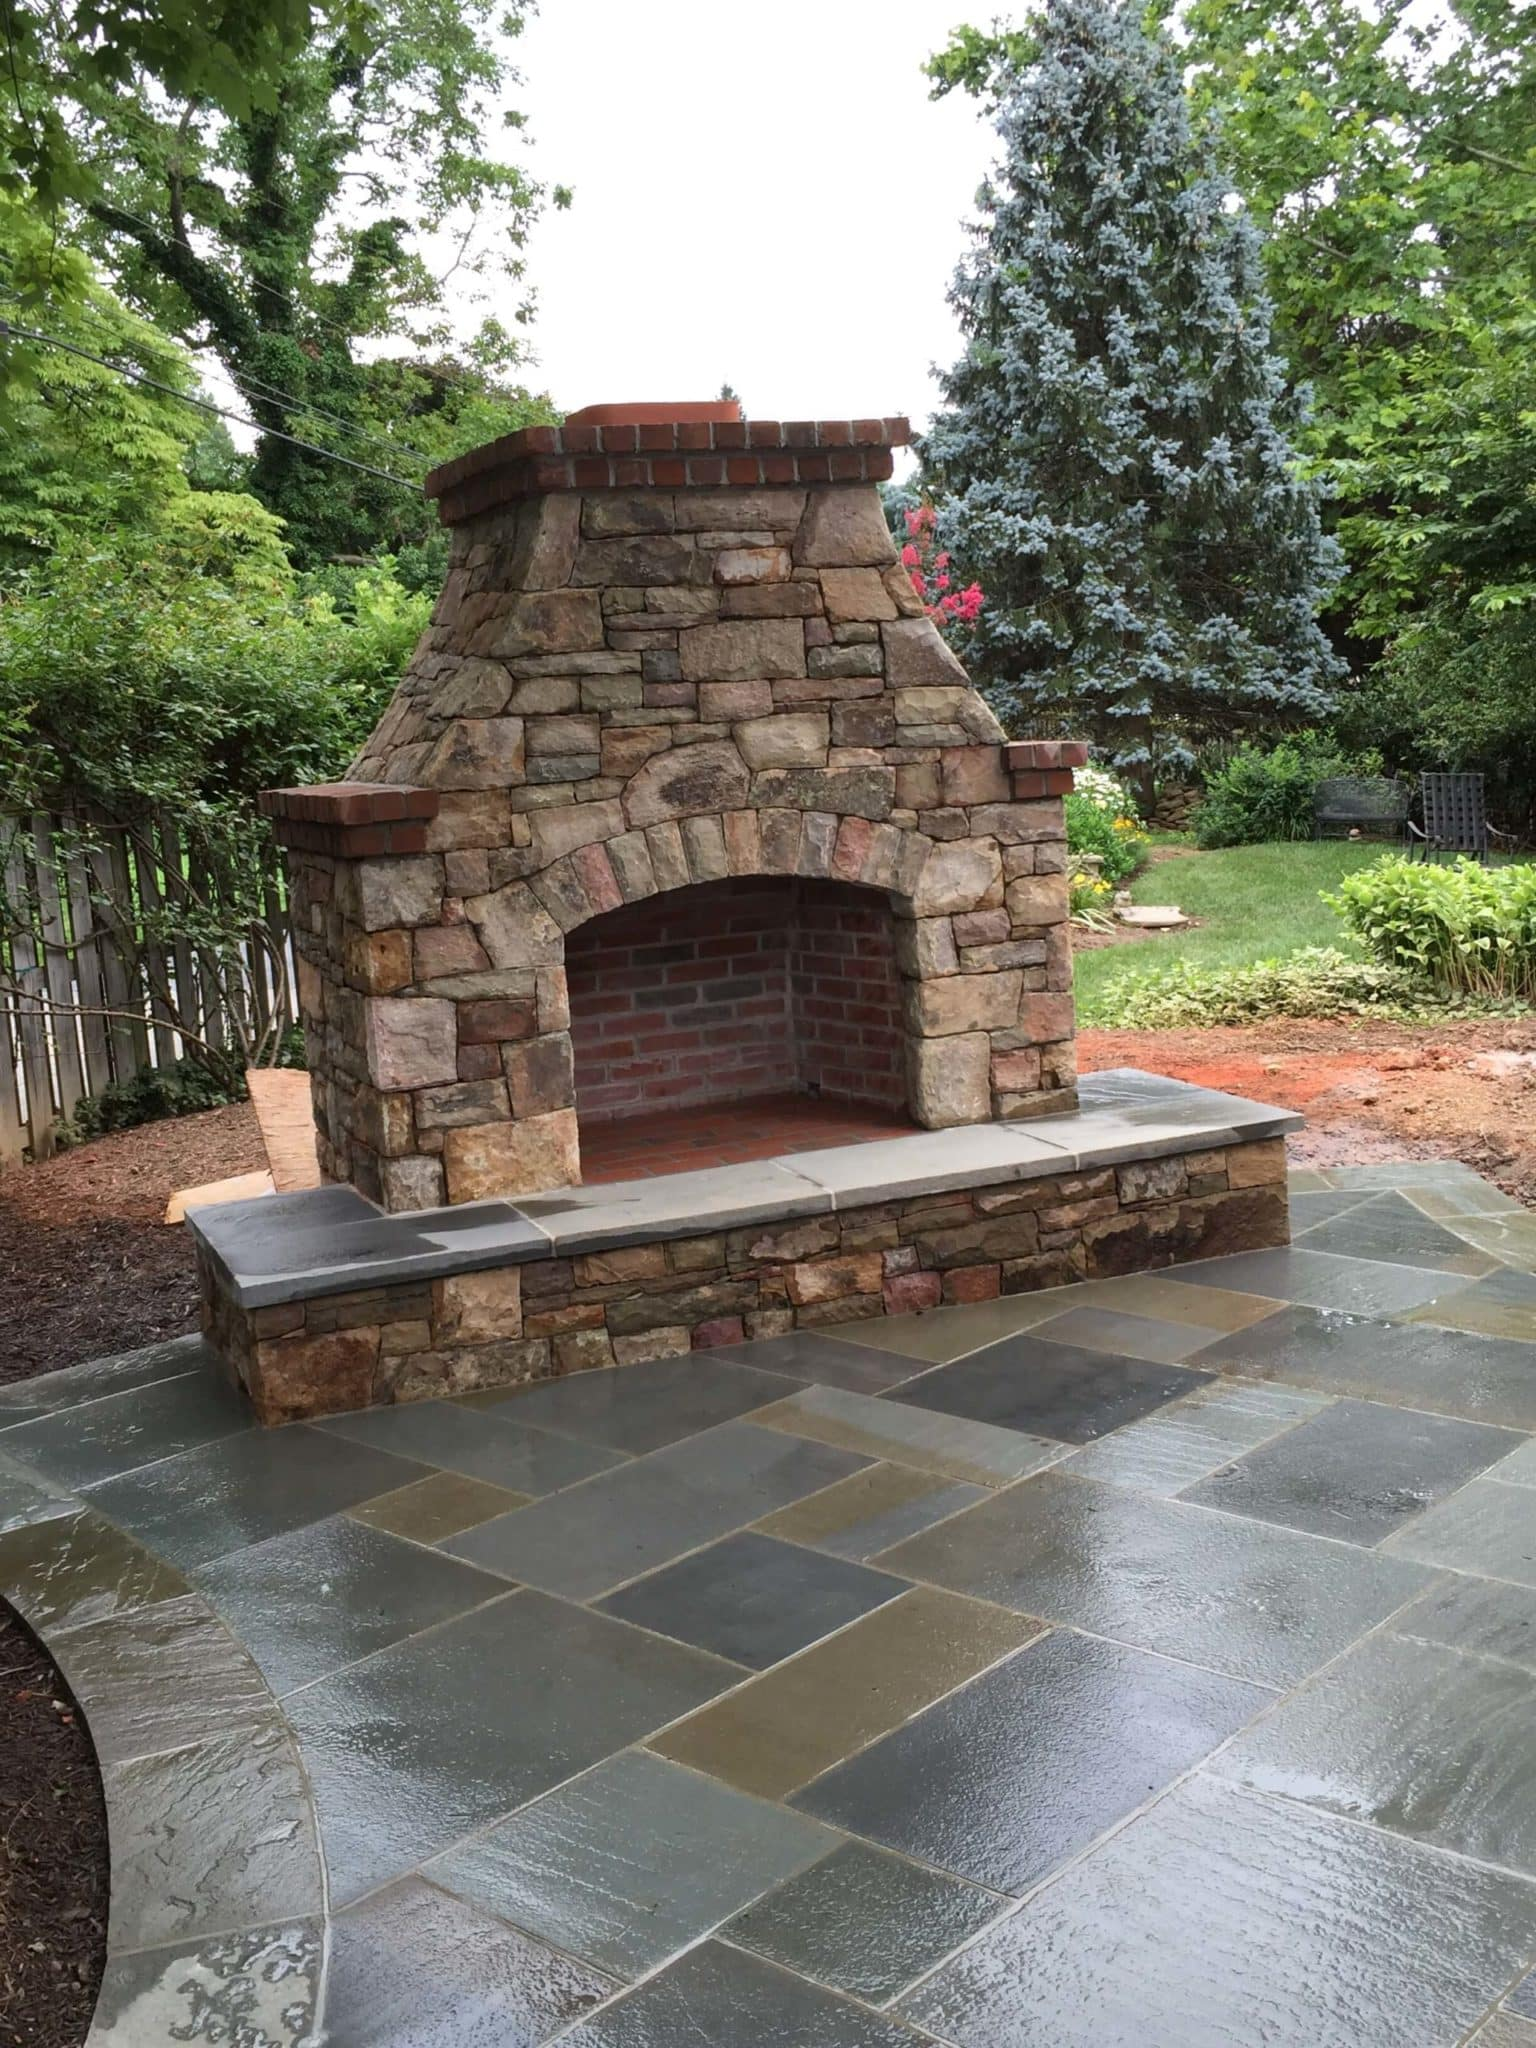 428 Stone Fireplace with Brick Accents